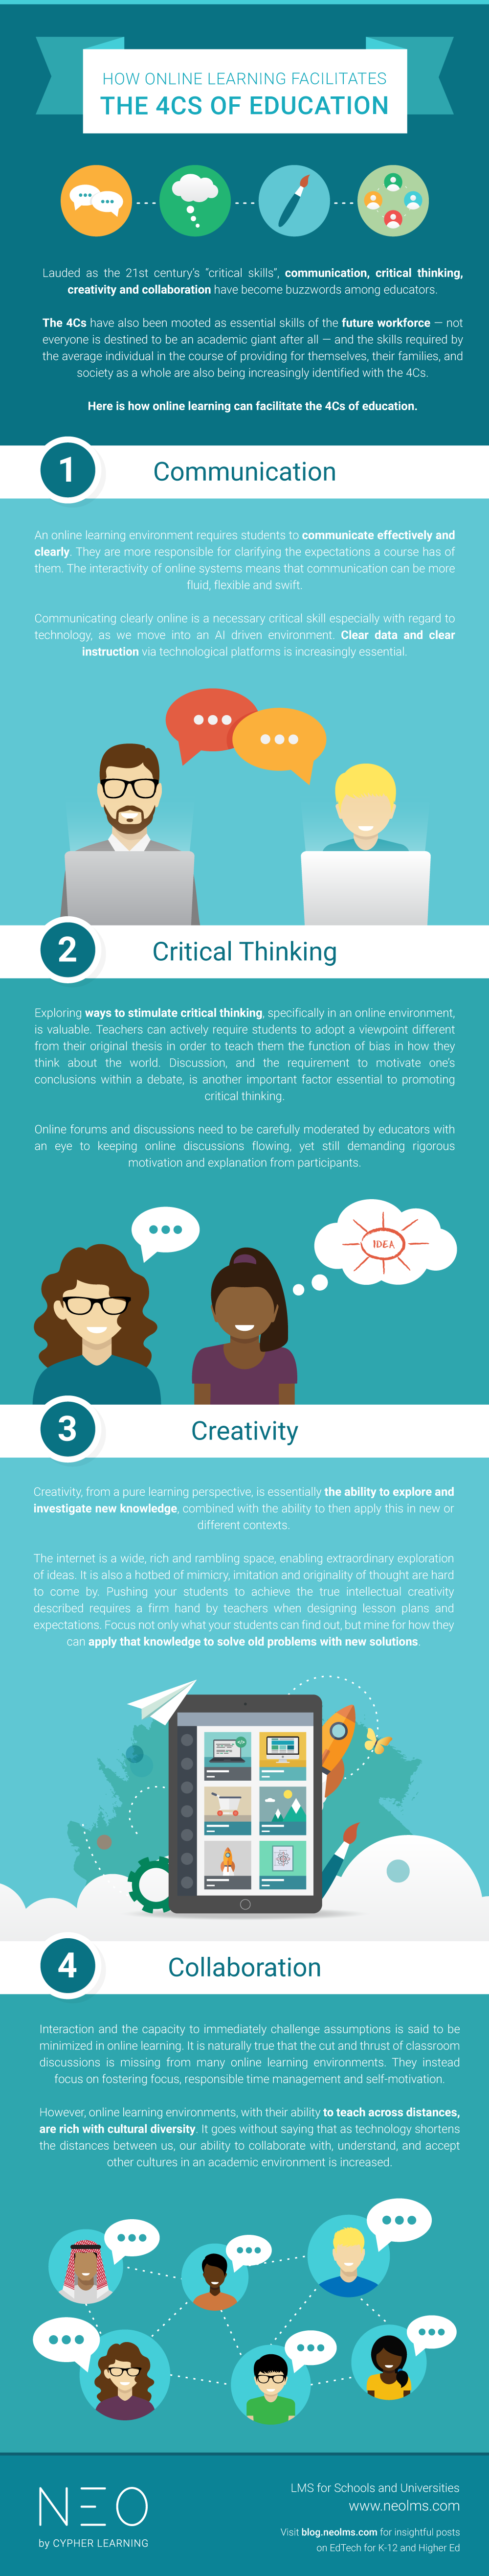 How online learning facilitates the 4Cs of education